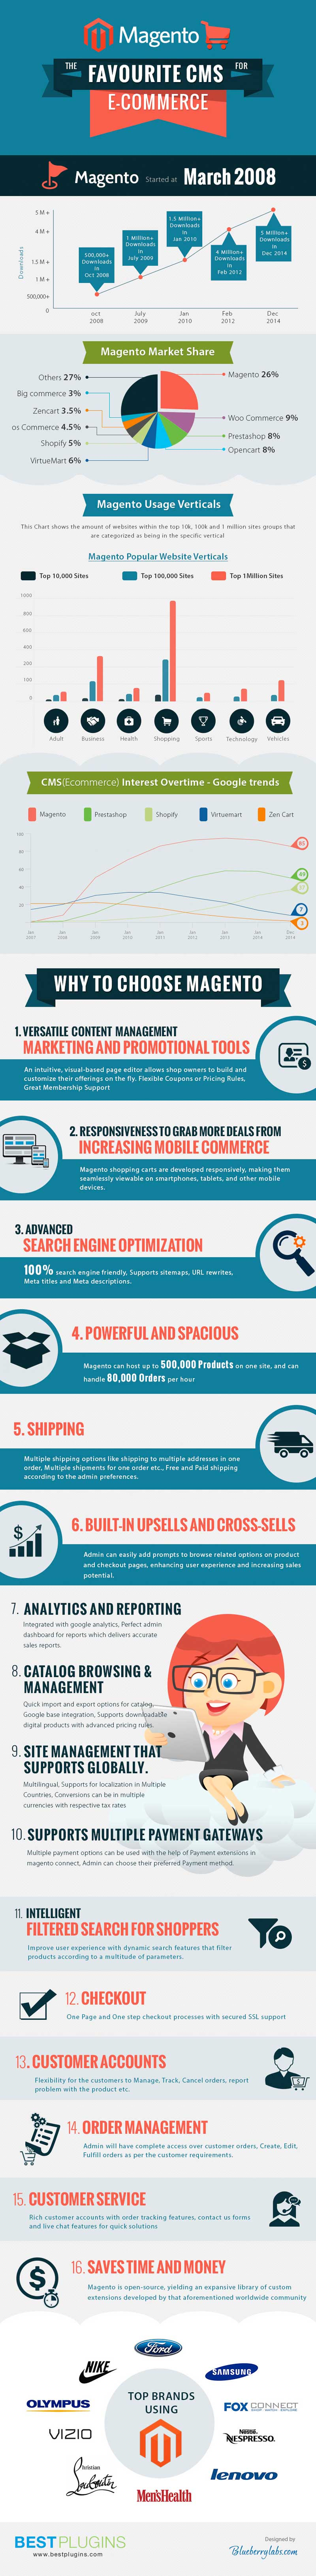 Magento most popular eCommerce CMS